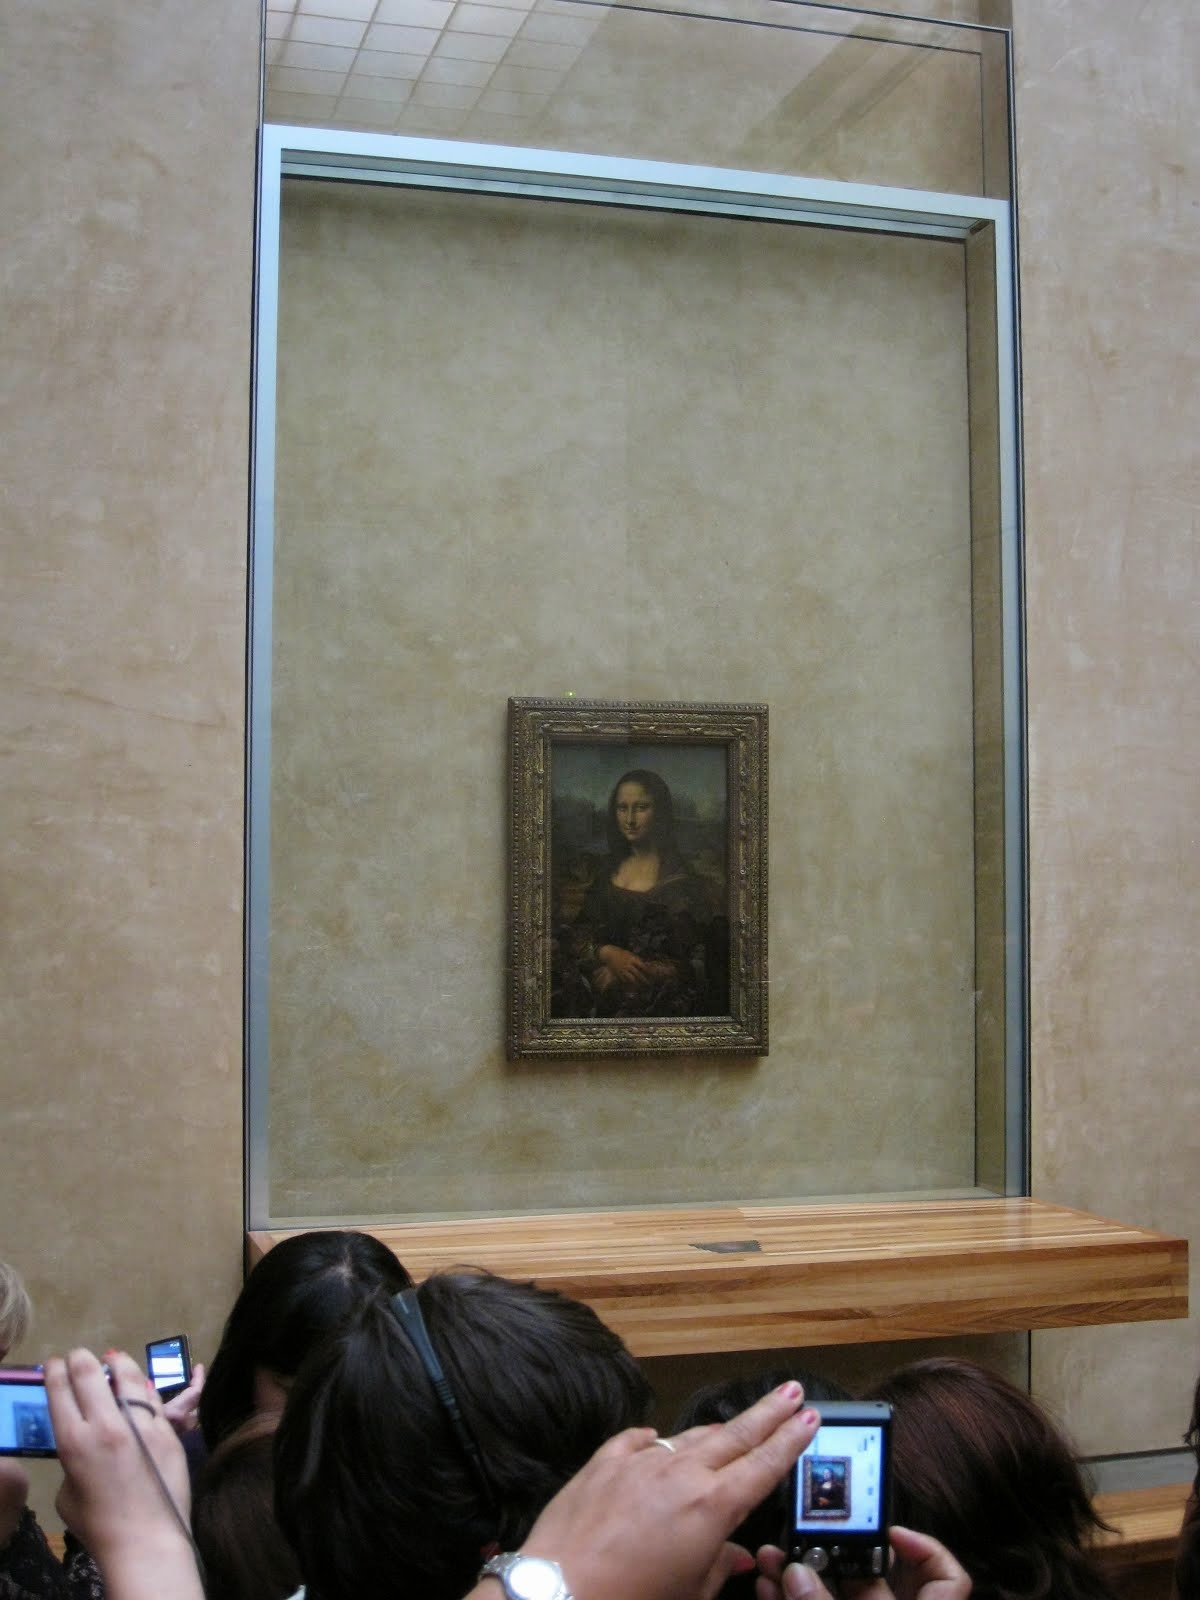 at 'Louvre, Paris'